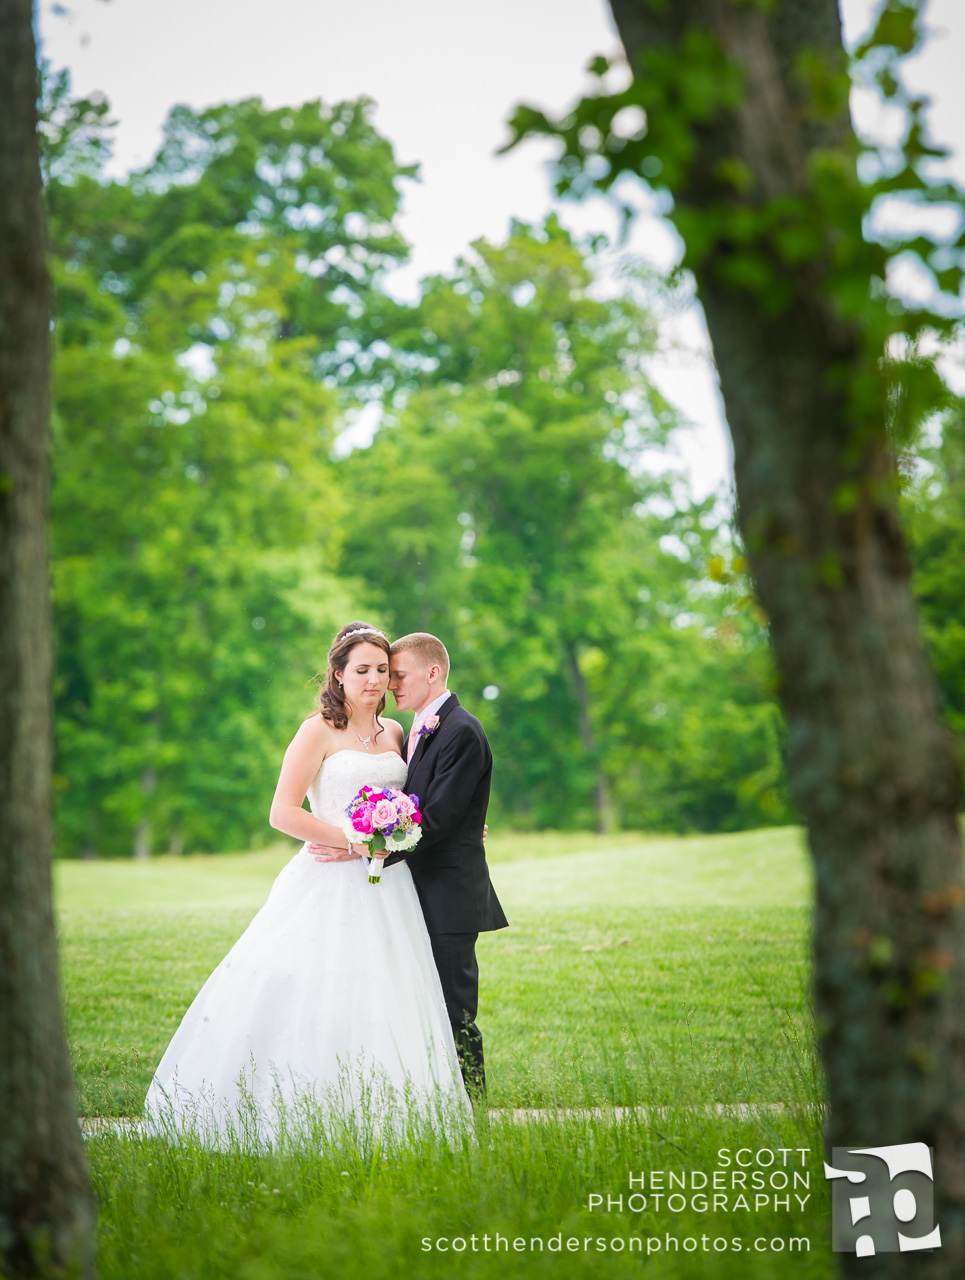 kellythomas-wedding-2014-014-blog.jpg